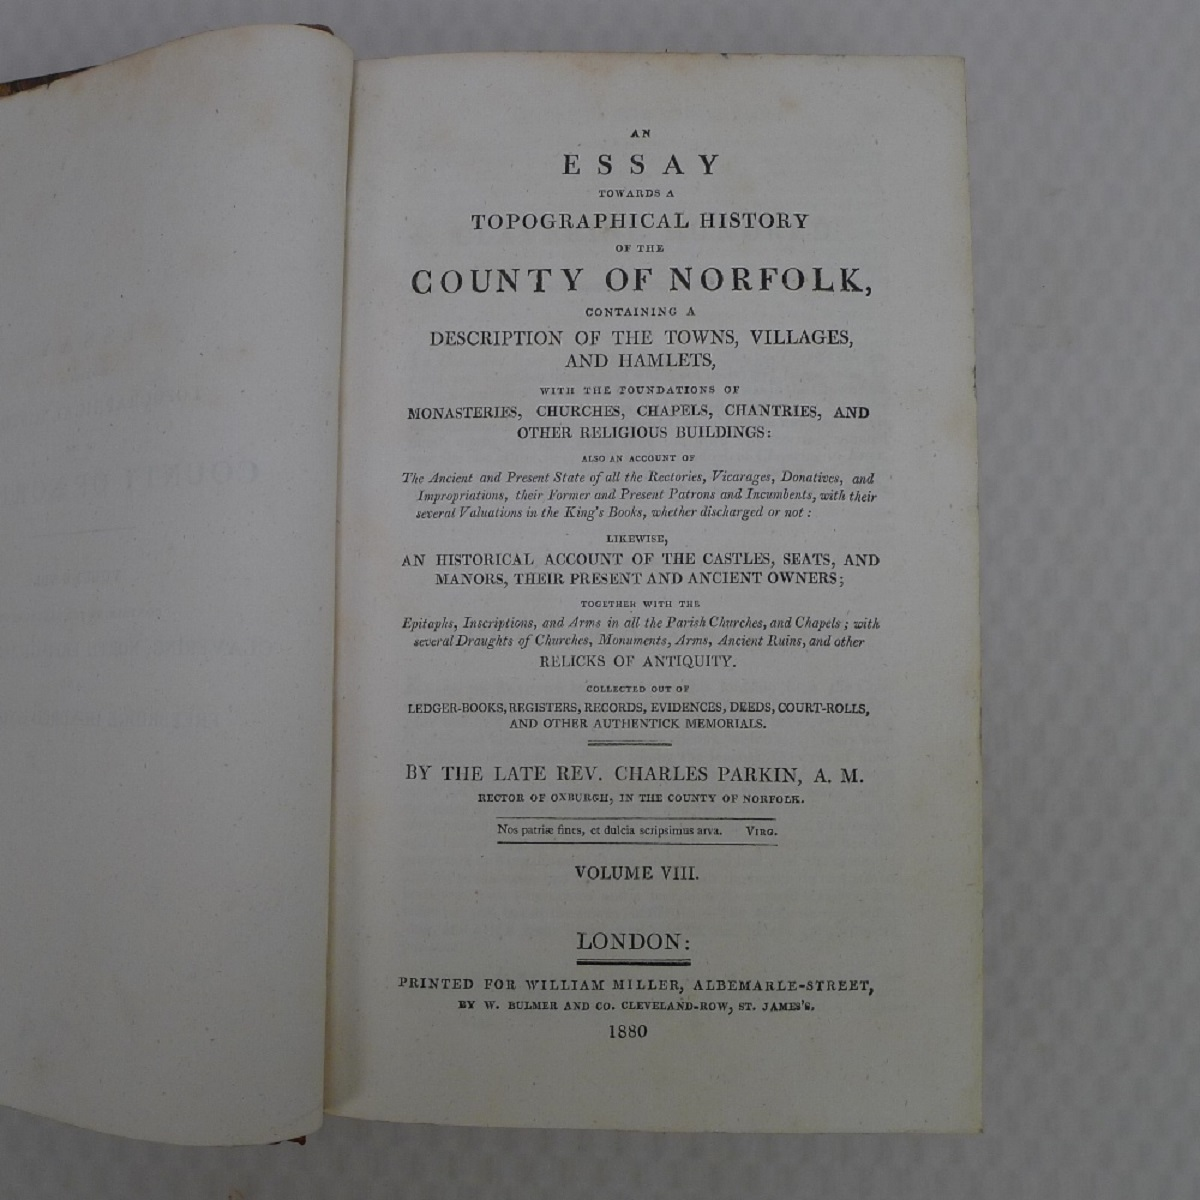 All 11 volumes of An Essay Towards the Topographical History of the County of Norfolk by Thomas - Image 17 of 23